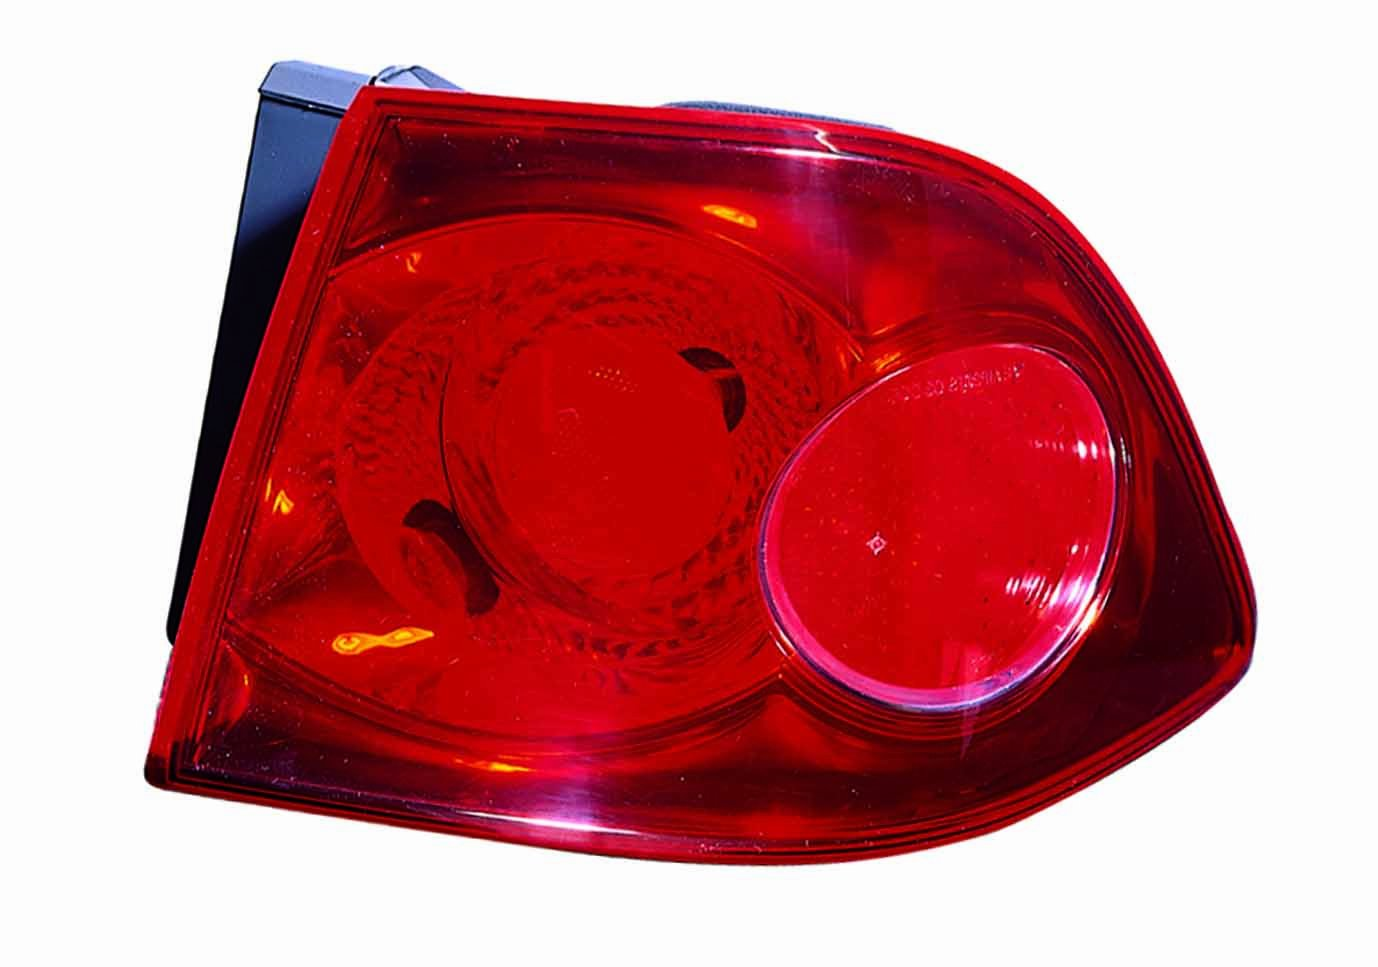 Depo 323-1927R-AS Kia Optima Passenger Side Replacement Taillight Assembly 02-00-323-1927R-AS